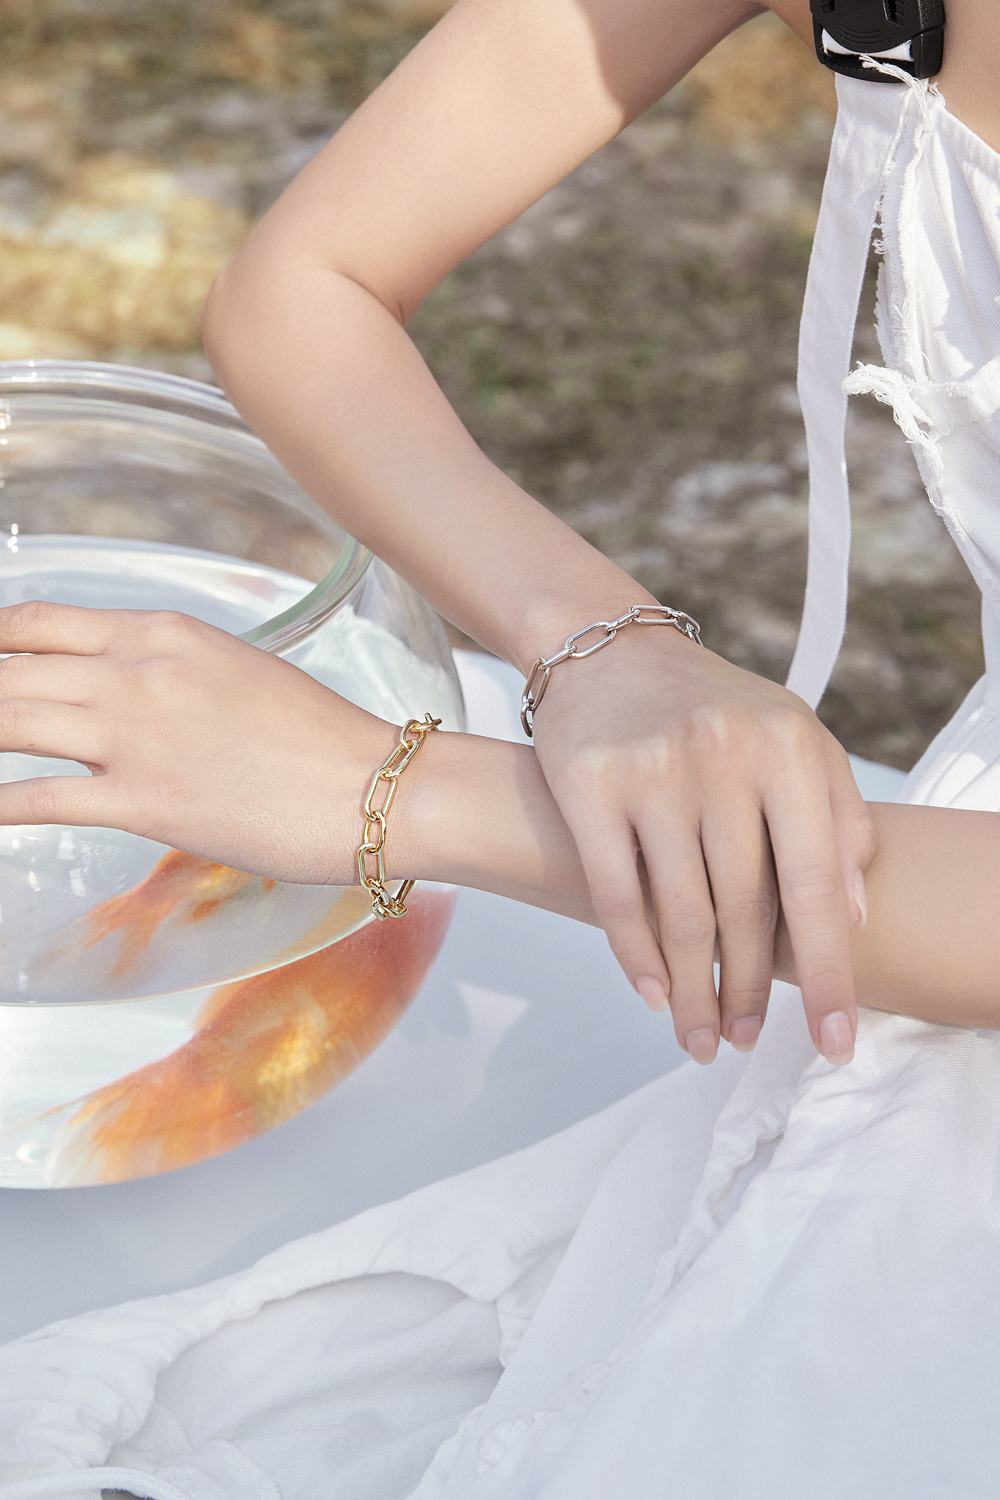 Paperclip Chain Bracelets-6 Fall Jewelry Trends You Won't Miss-Bamoer Jewelry